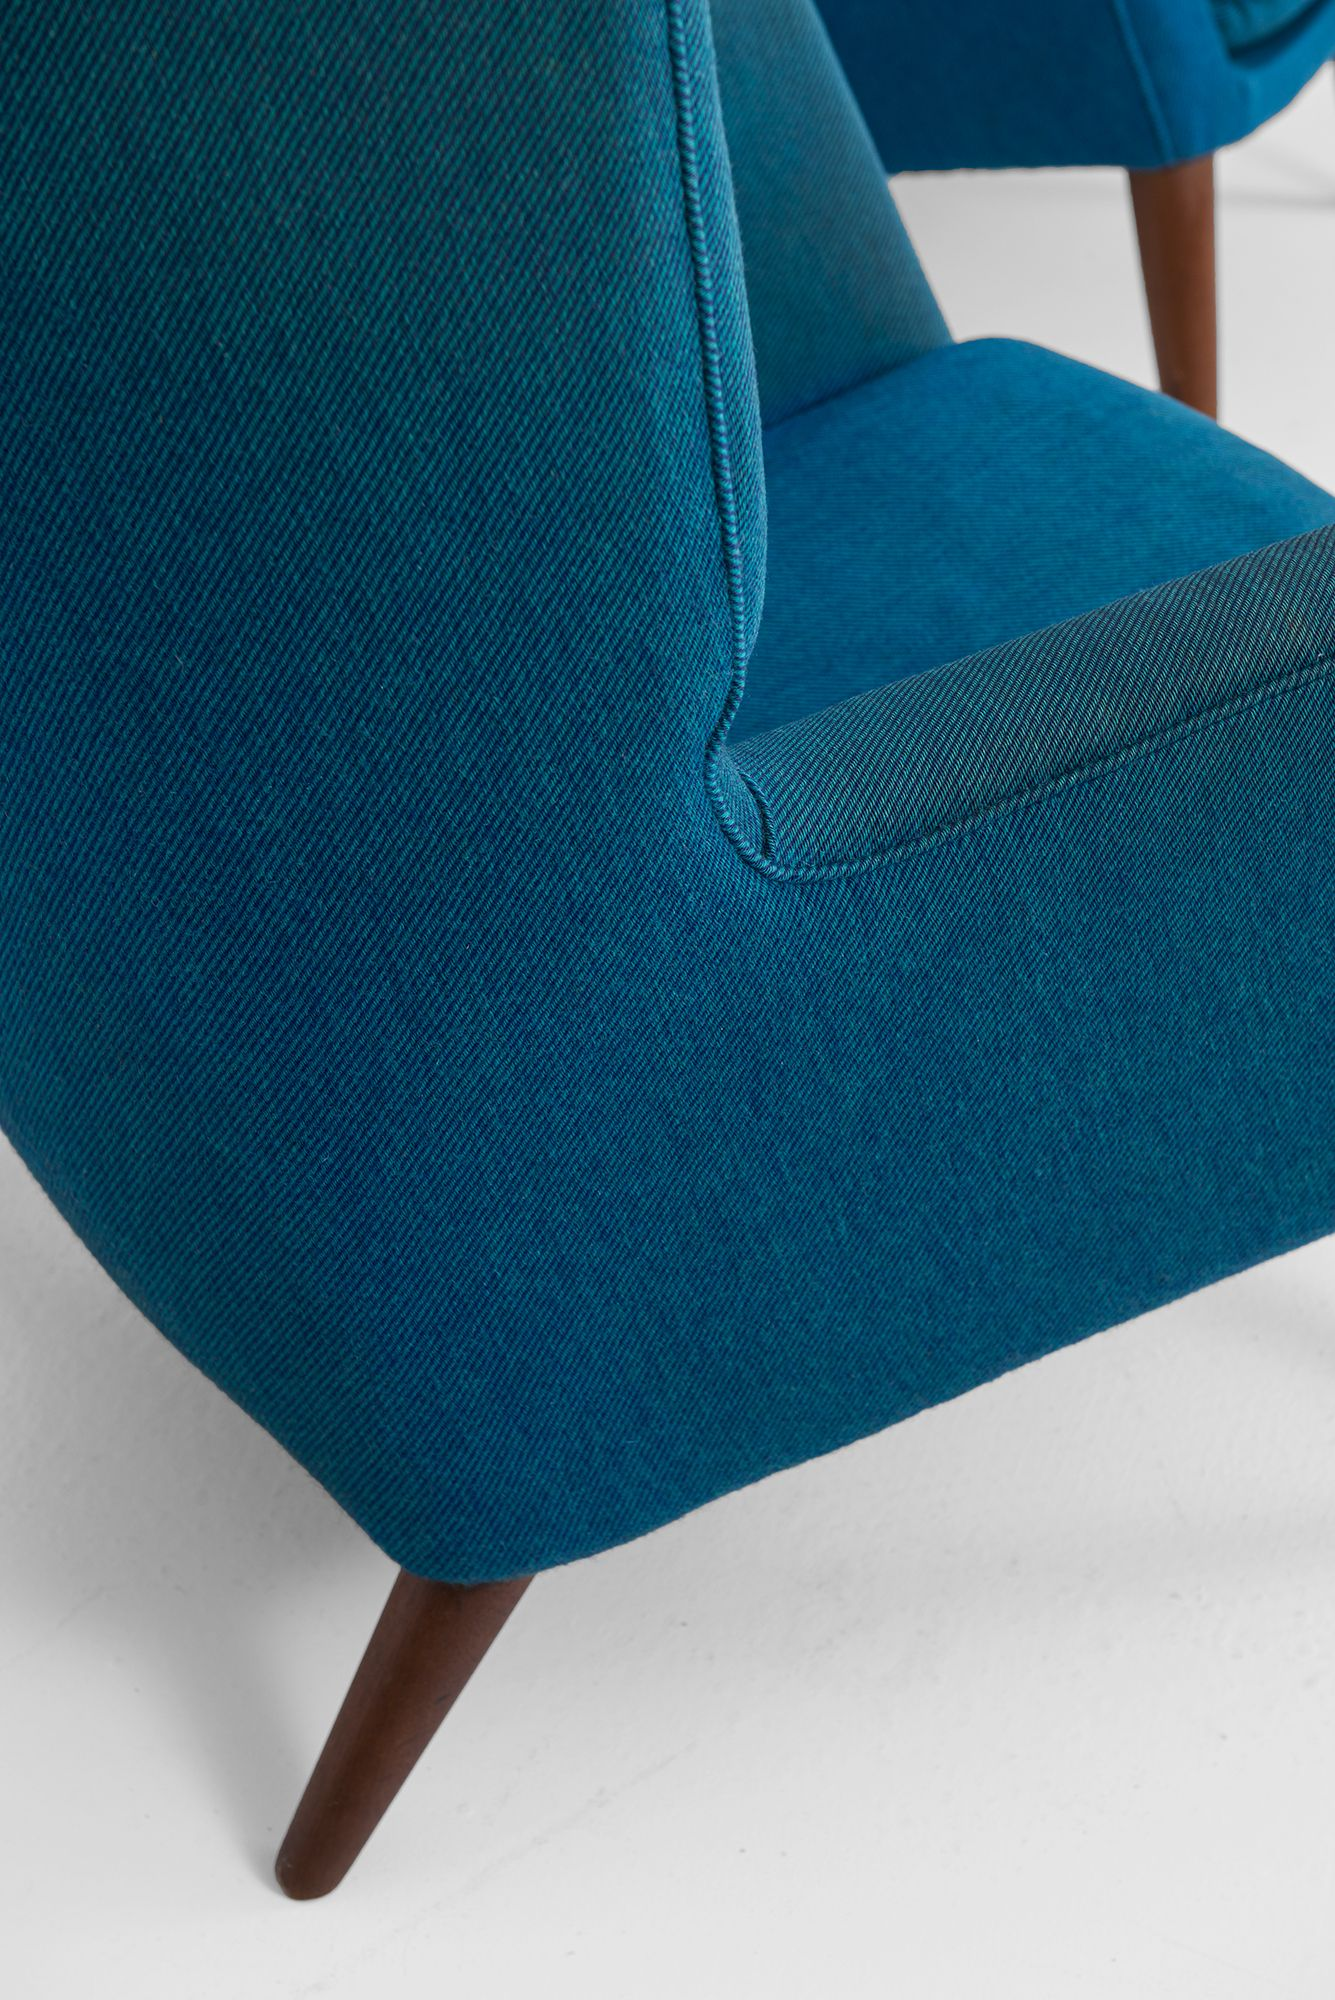 Sold Mid Century Modern Furniture Furniture Styles Chair